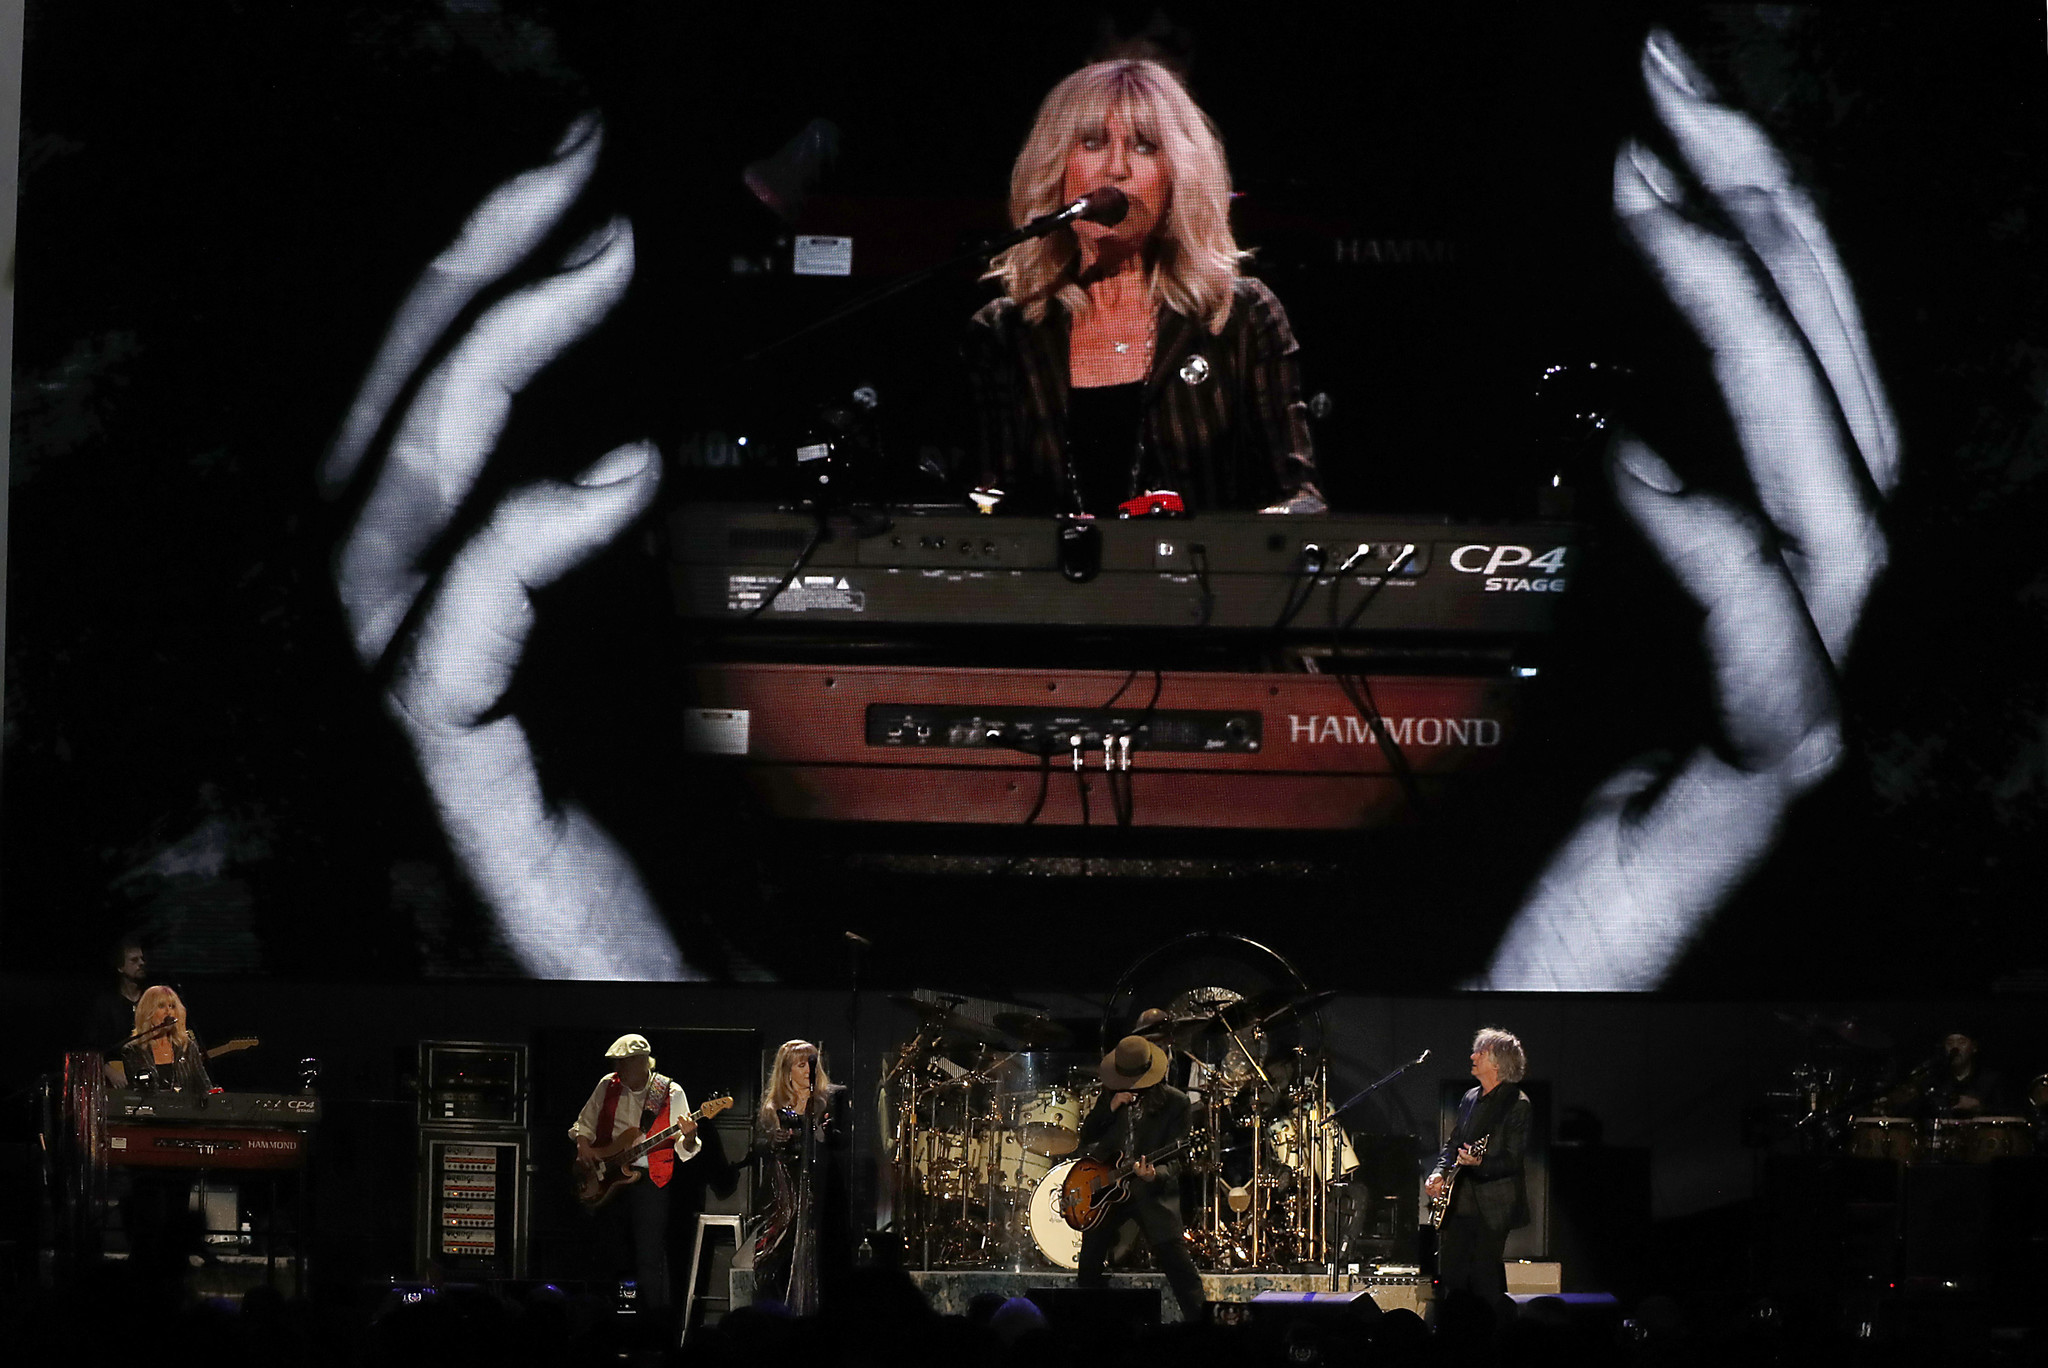 Review: Thinking through Fleetwood Mac's tour without Lindsey